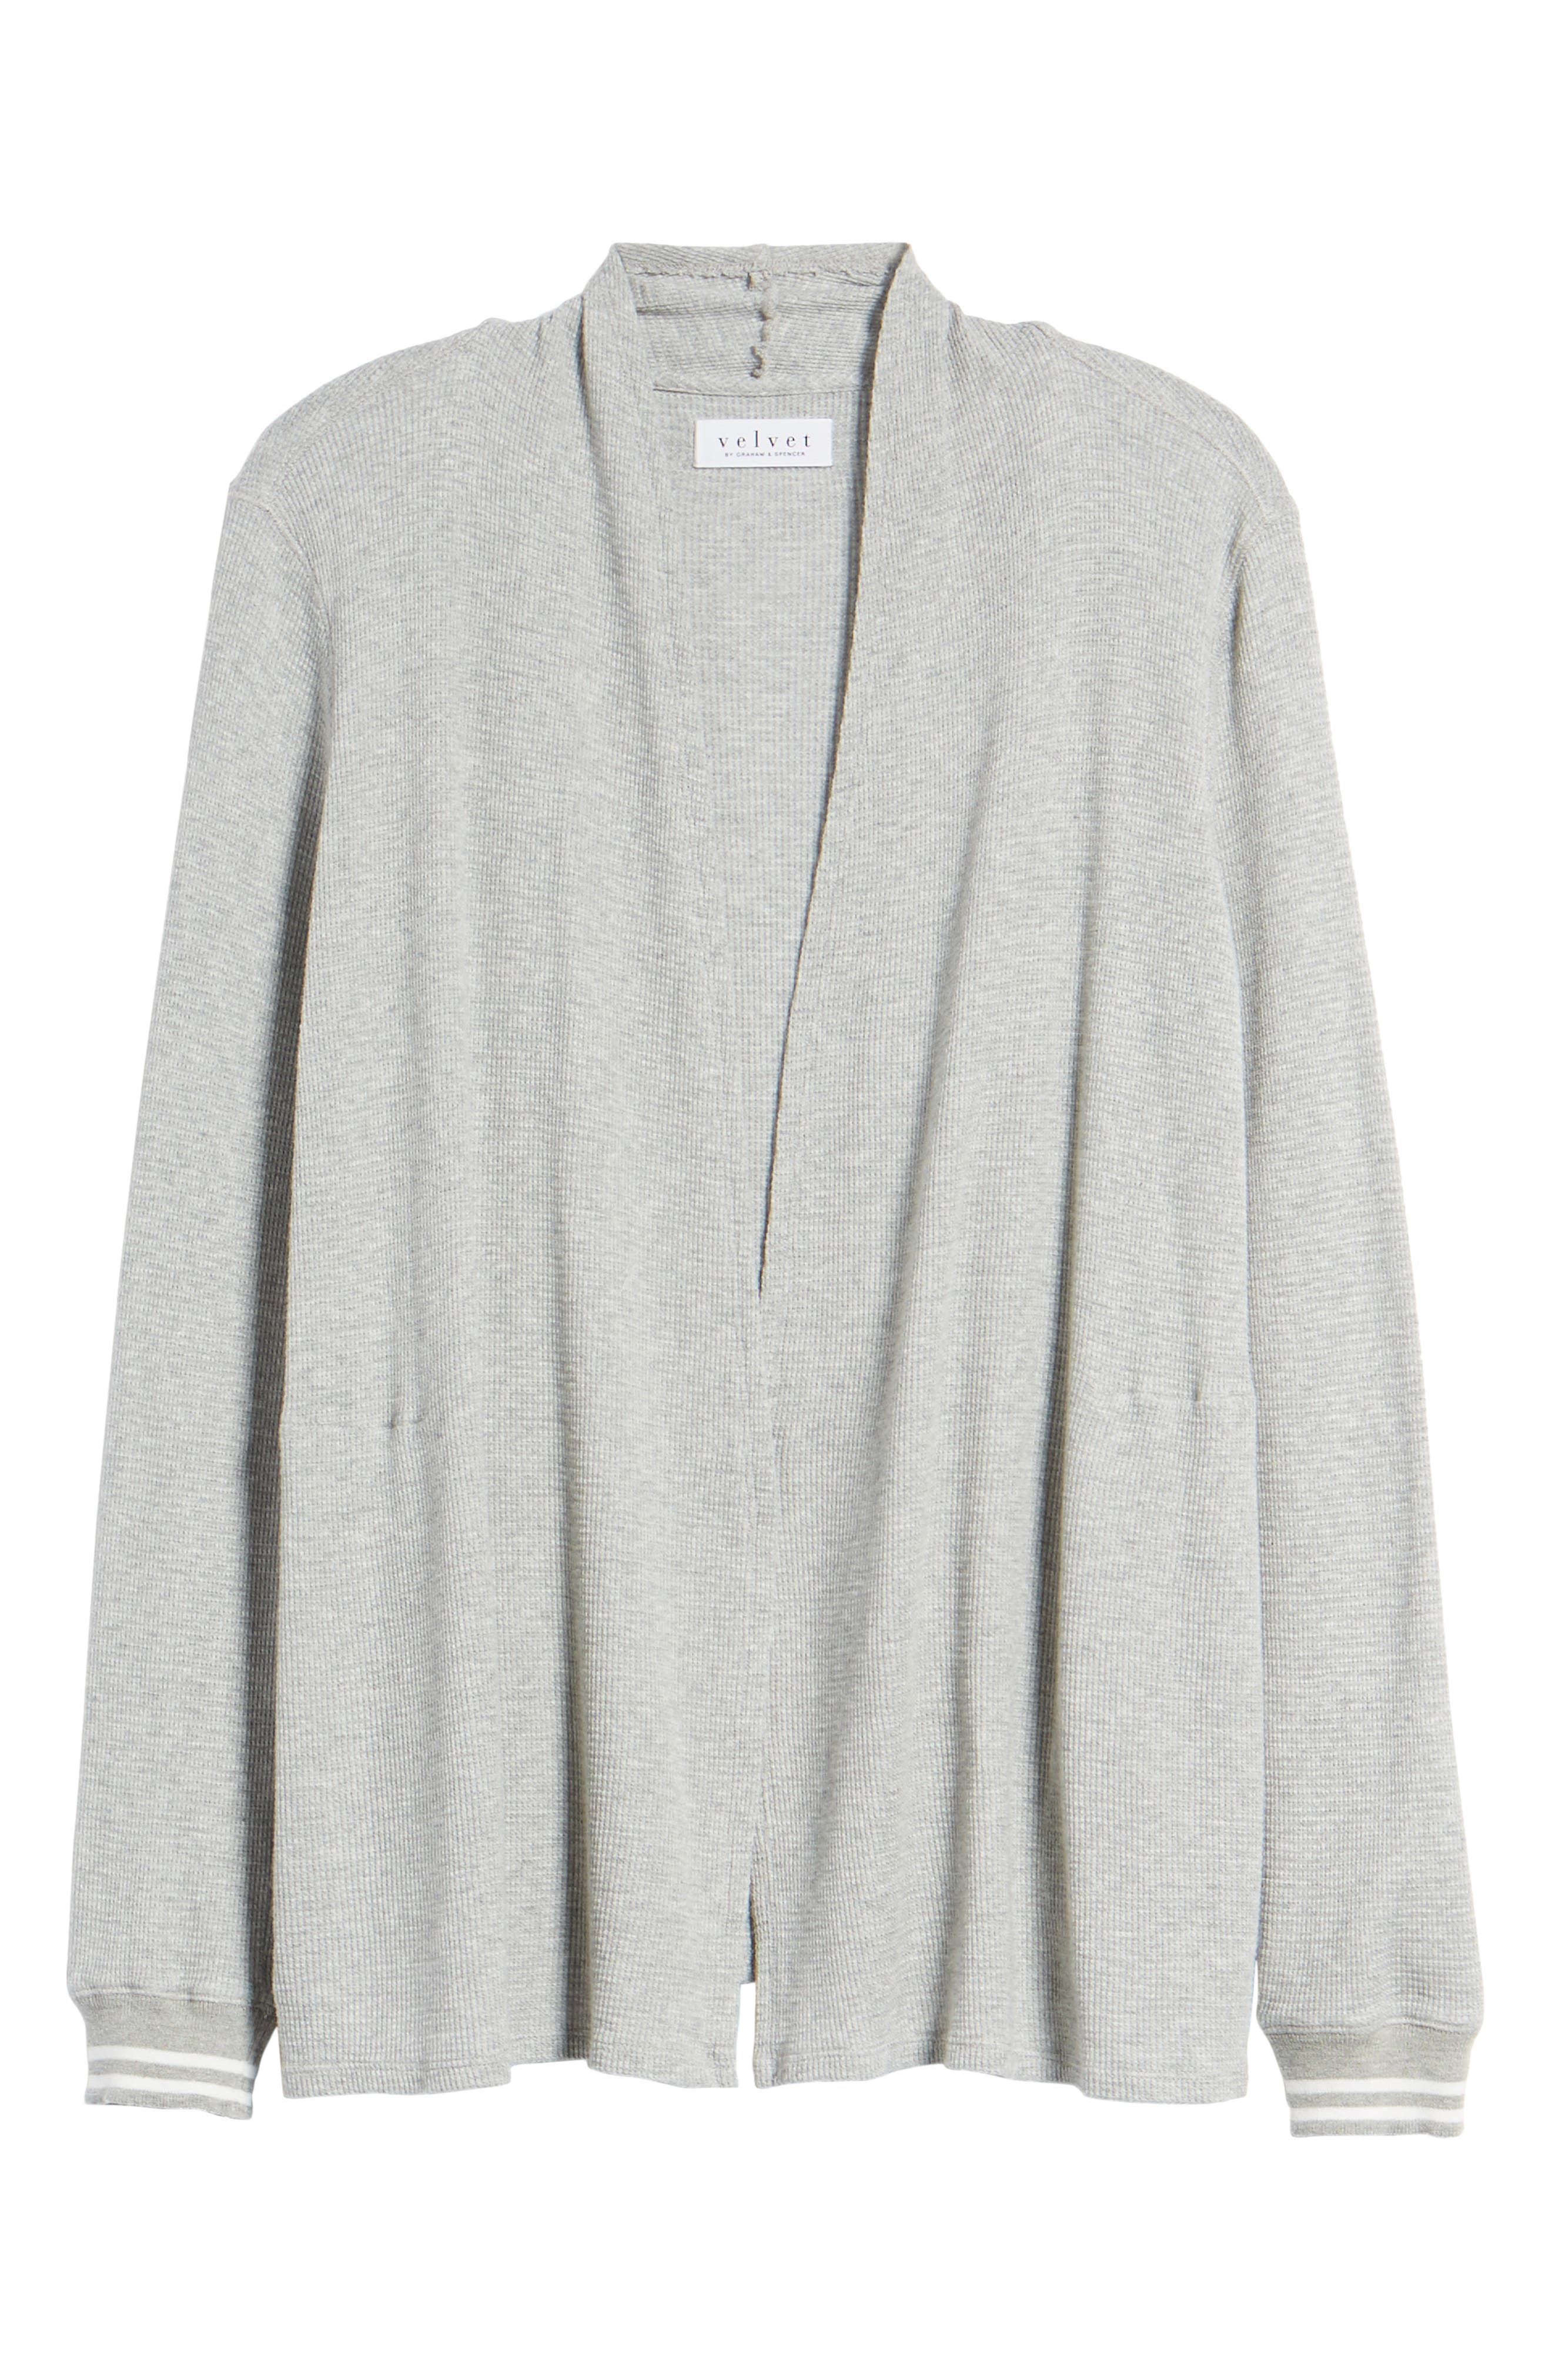 Baby Thermal Open Knit Cardigan,                             Alternate thumbnail 7, color,                             Heather Grey